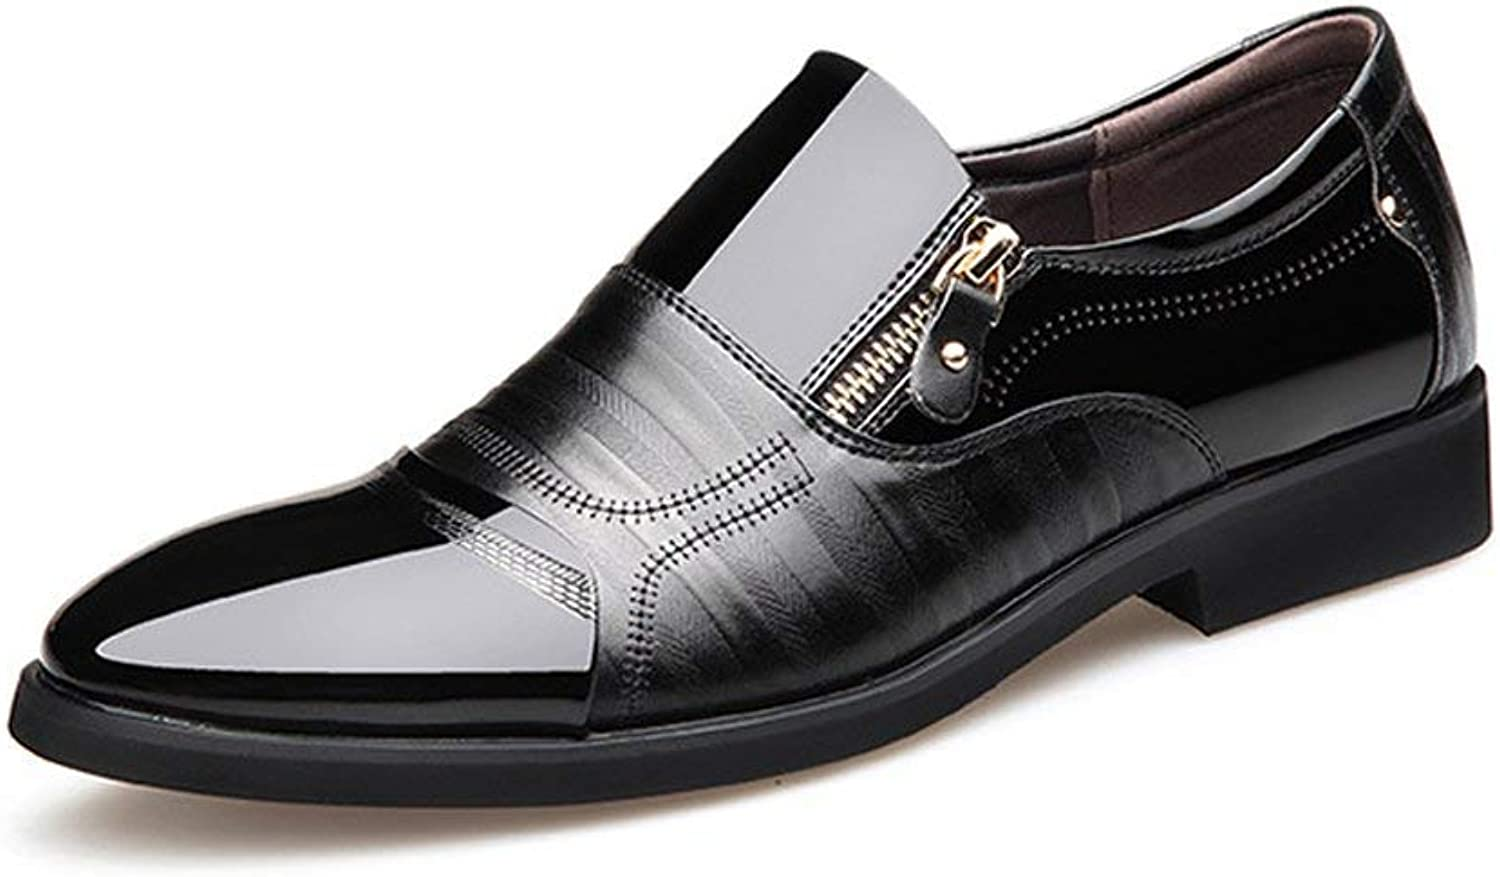 FuweiEncore 2018 Mens Business shoes Smooth PU Leather Splice Zipper Decoration Slip-on Breathable Mesh Oxfords (color  Brown, Size  42 EU) (color   Black, Size   44 EU)